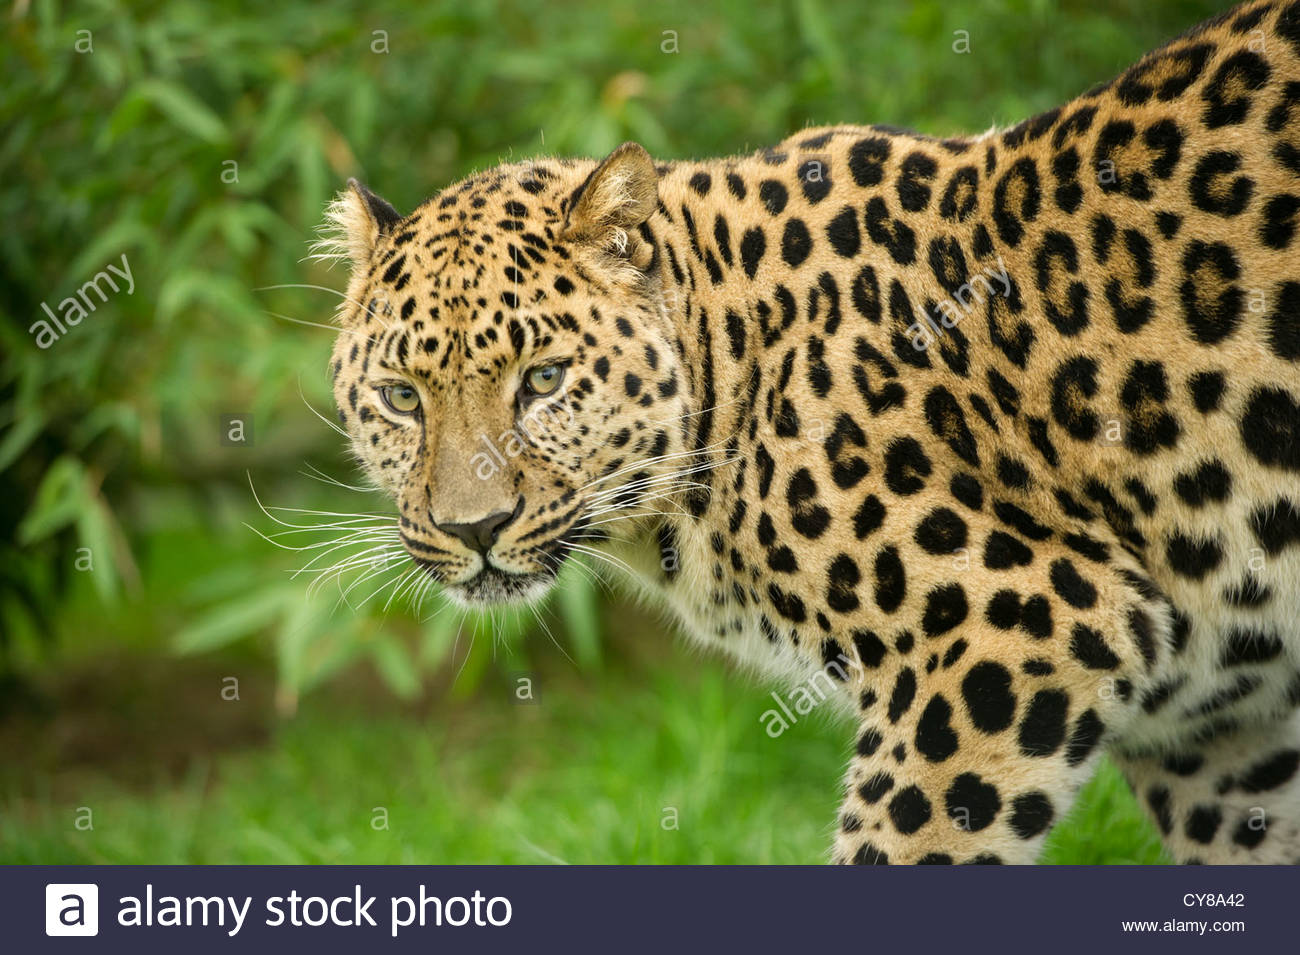 Amur leopard looking at viewer. - Stock Image